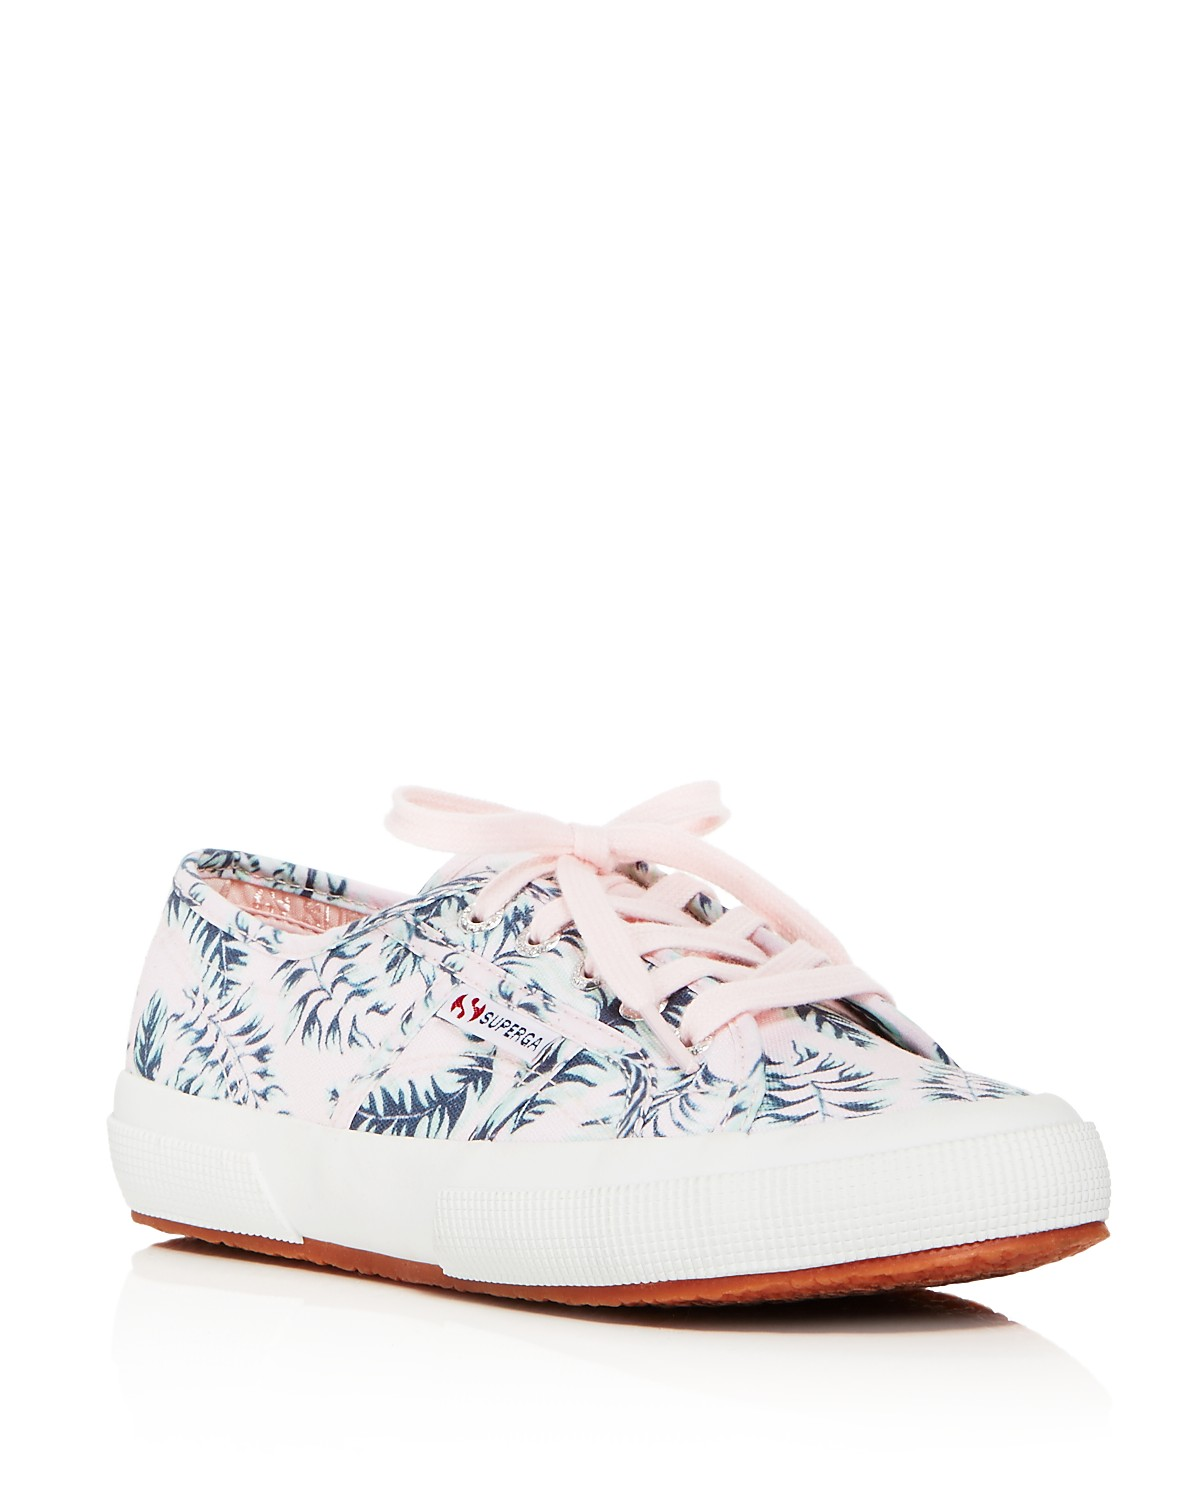 Superga Women's Fantasy Cotu Canvas Lace Up Sneakers eulBDj